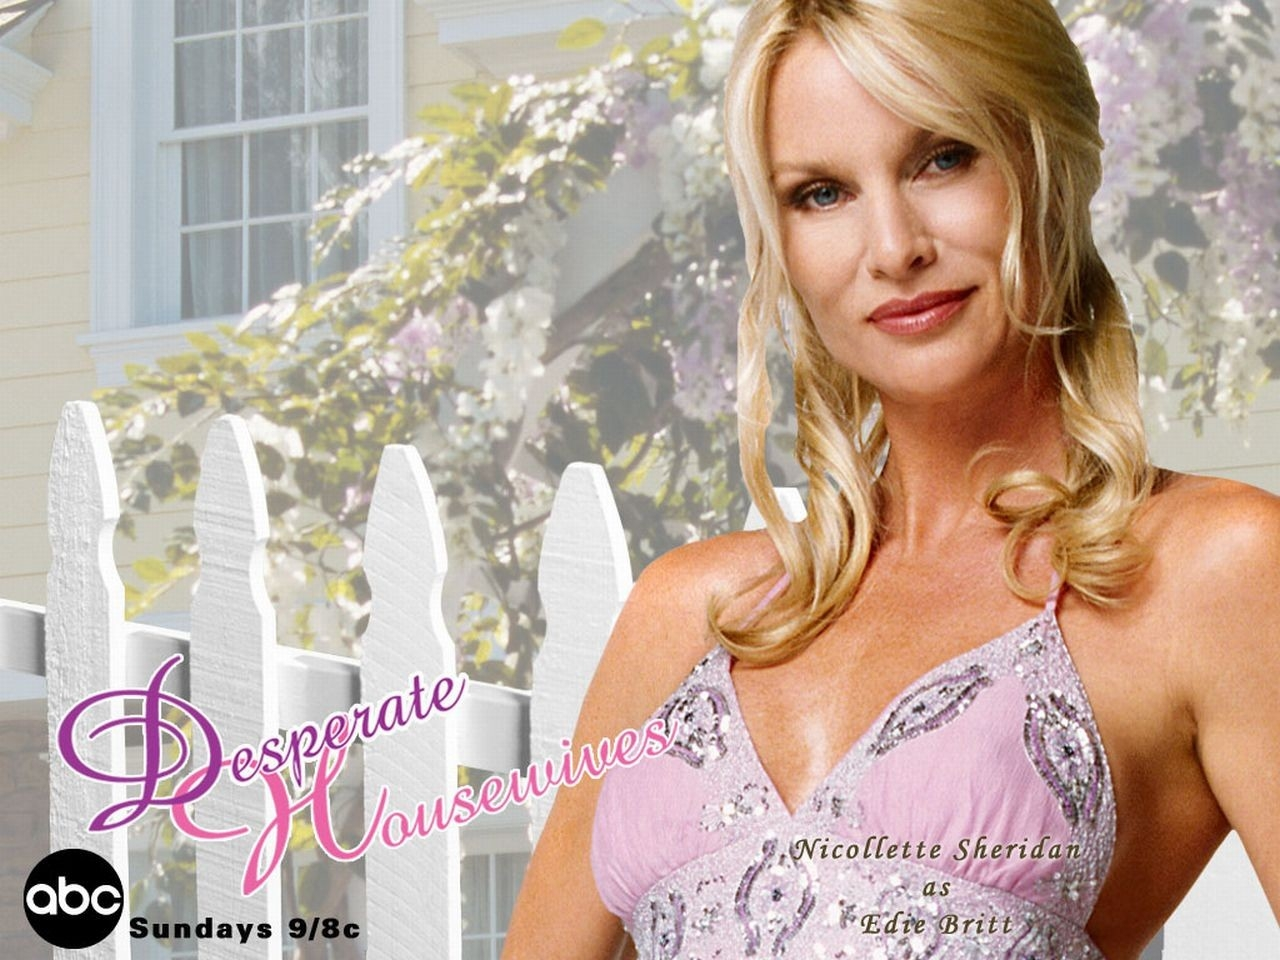 Wallpaper della serie Desperate Housewives con Edie Britt (Nicollette Sheridan)